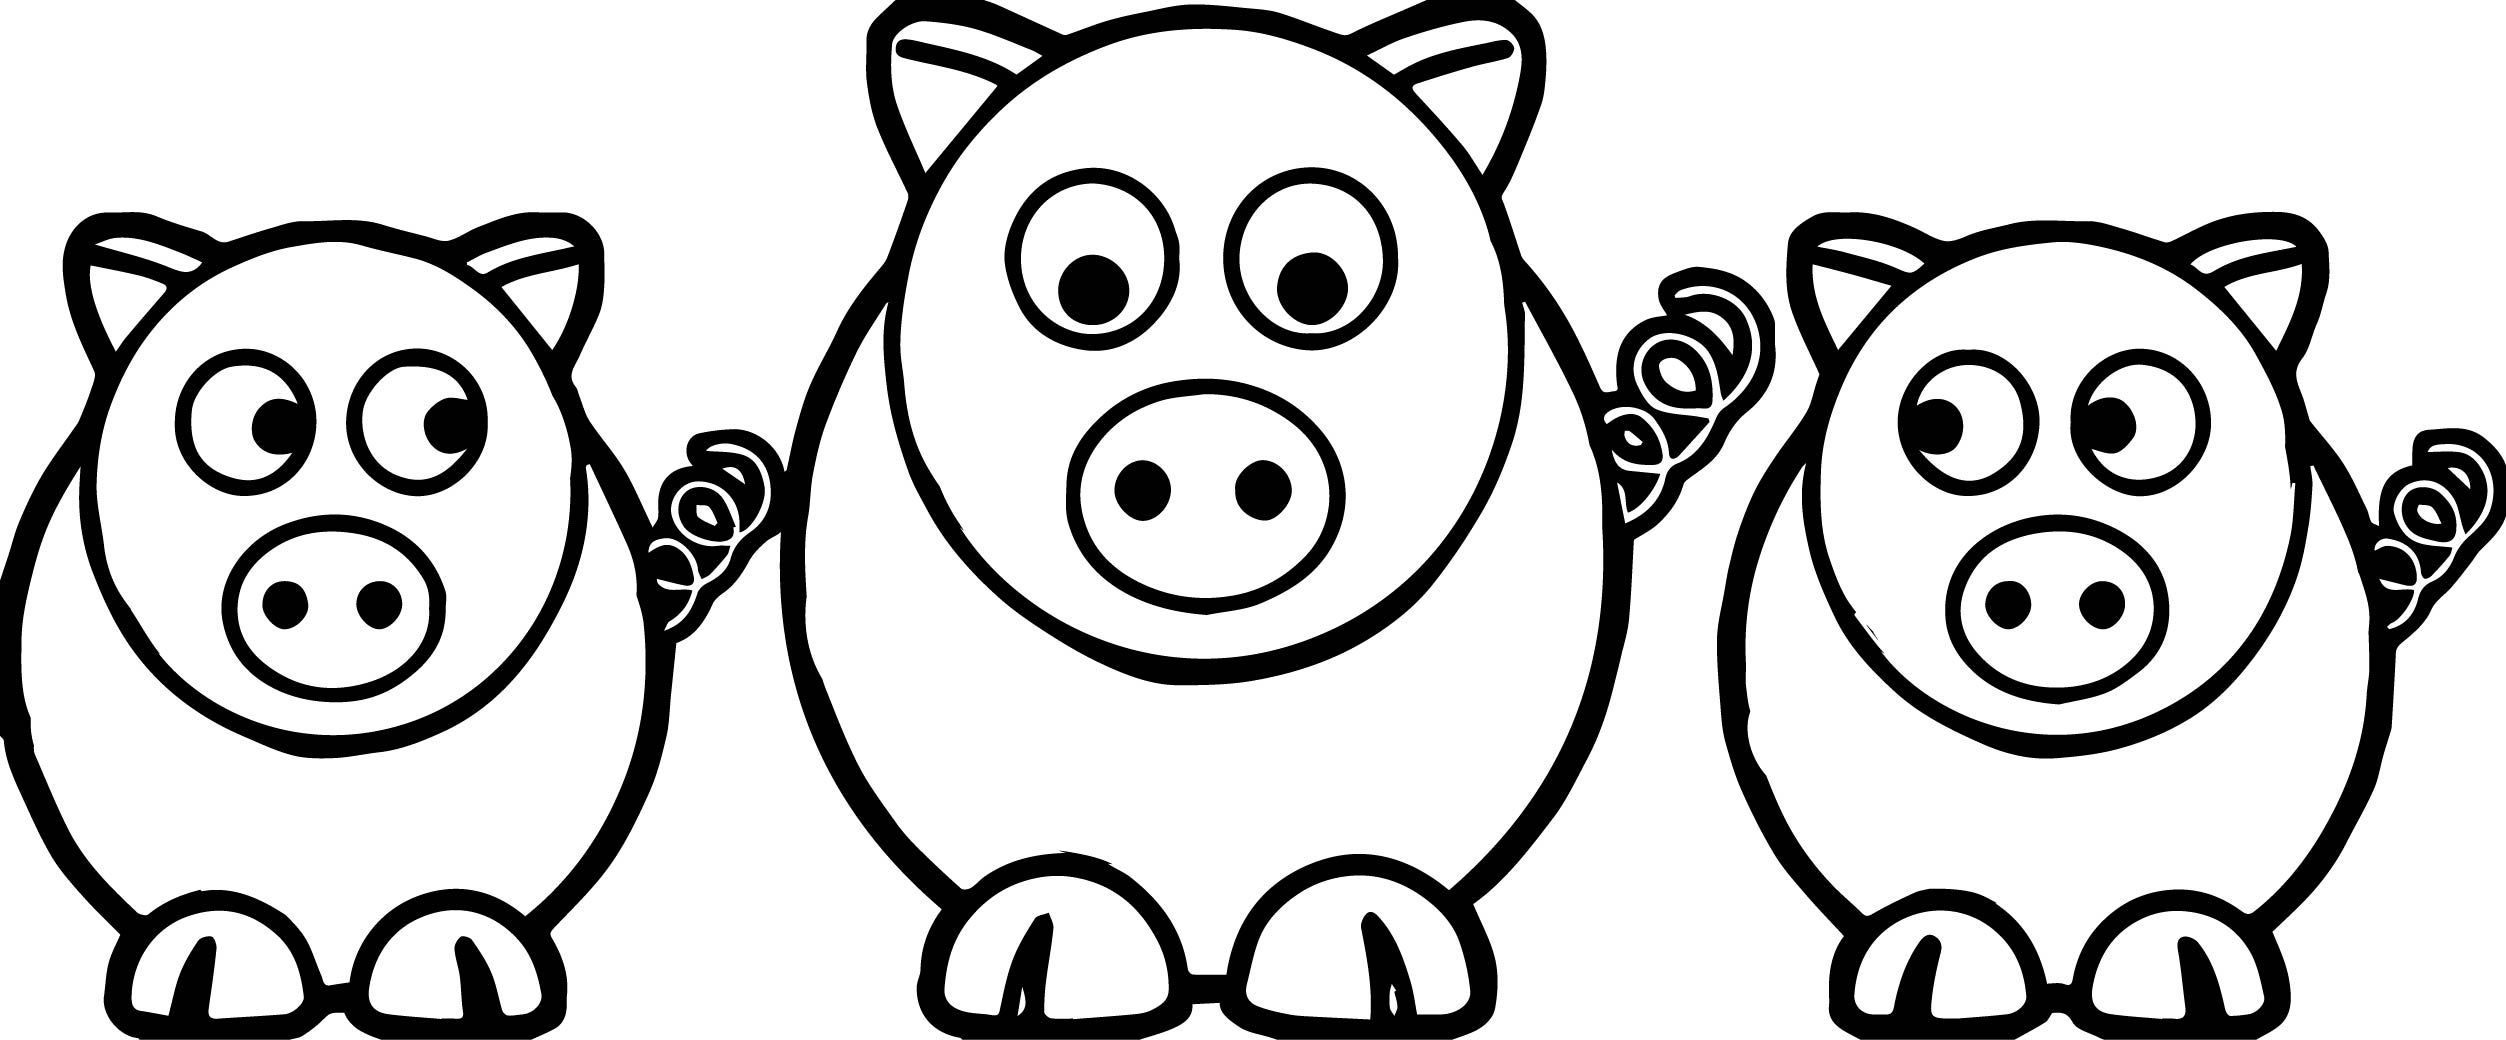 3 Little Pigs Look Coloring Page | Wecoloringpage